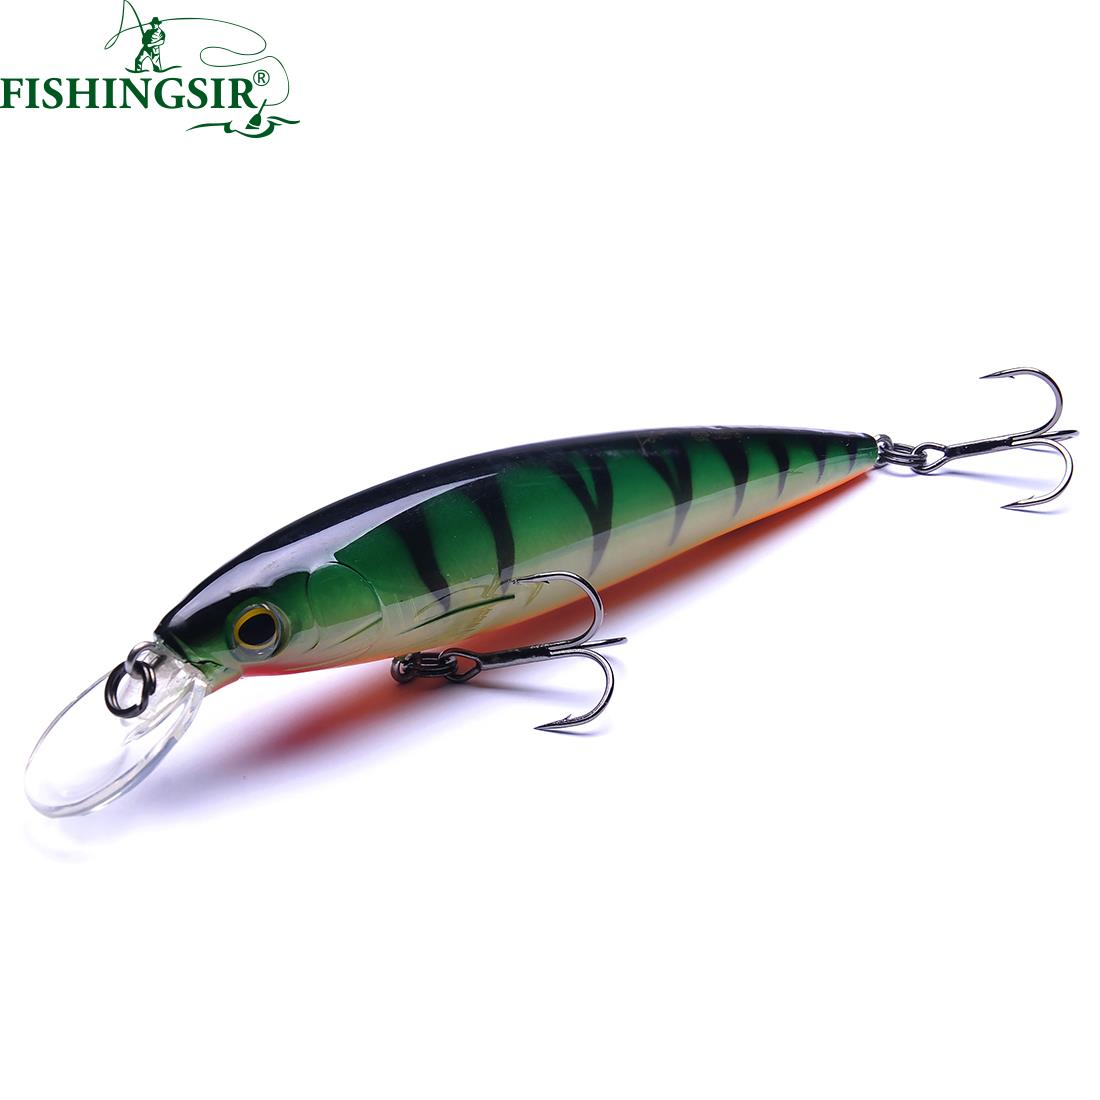 Minnow Fishing Lures 14CM/9.5CM Hooks Fish Minnow Lure Tackle Hard Bait Pesca Wobbler Artificial Swim Bait Topwater Carp Pesca lushazer fishing lure minnow bait 18g hard lures carp fishing iscas artificiais 2016 wobbler crankbait cheap sea fishing tackle